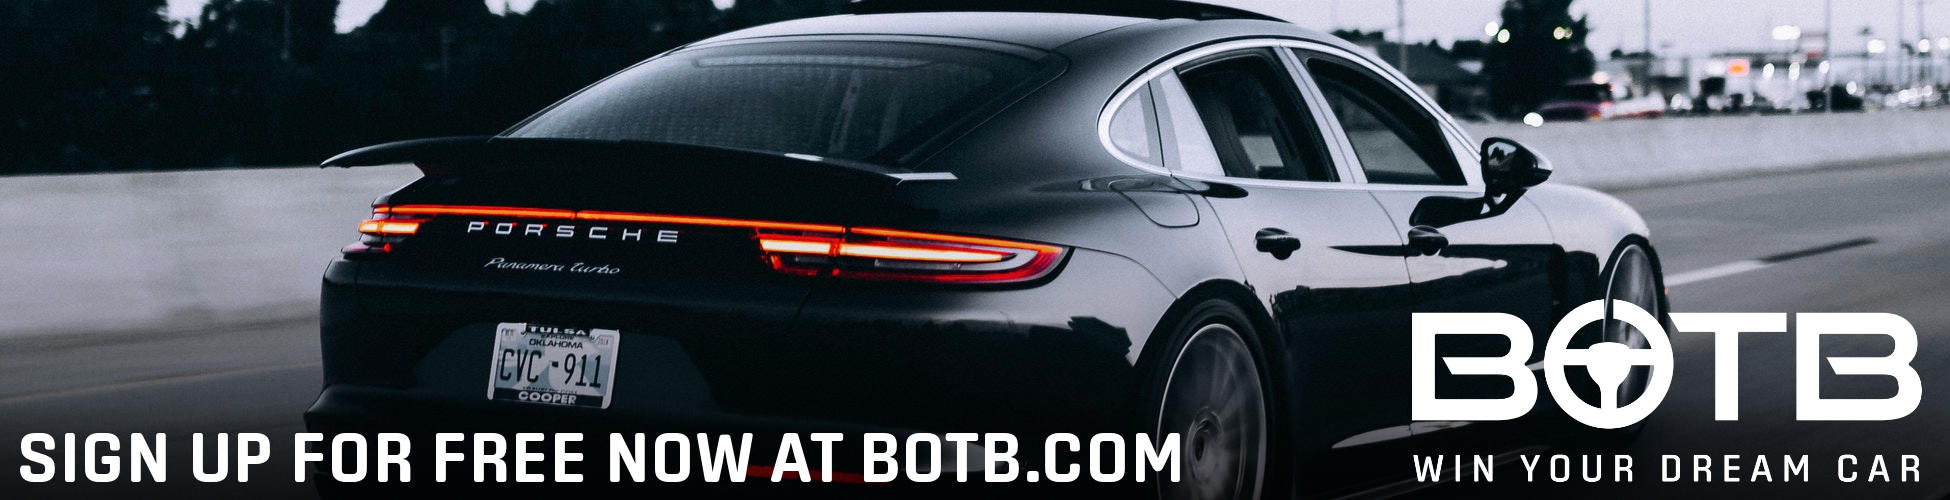 Increase your BOTB odds now by registering to BOTB.com!